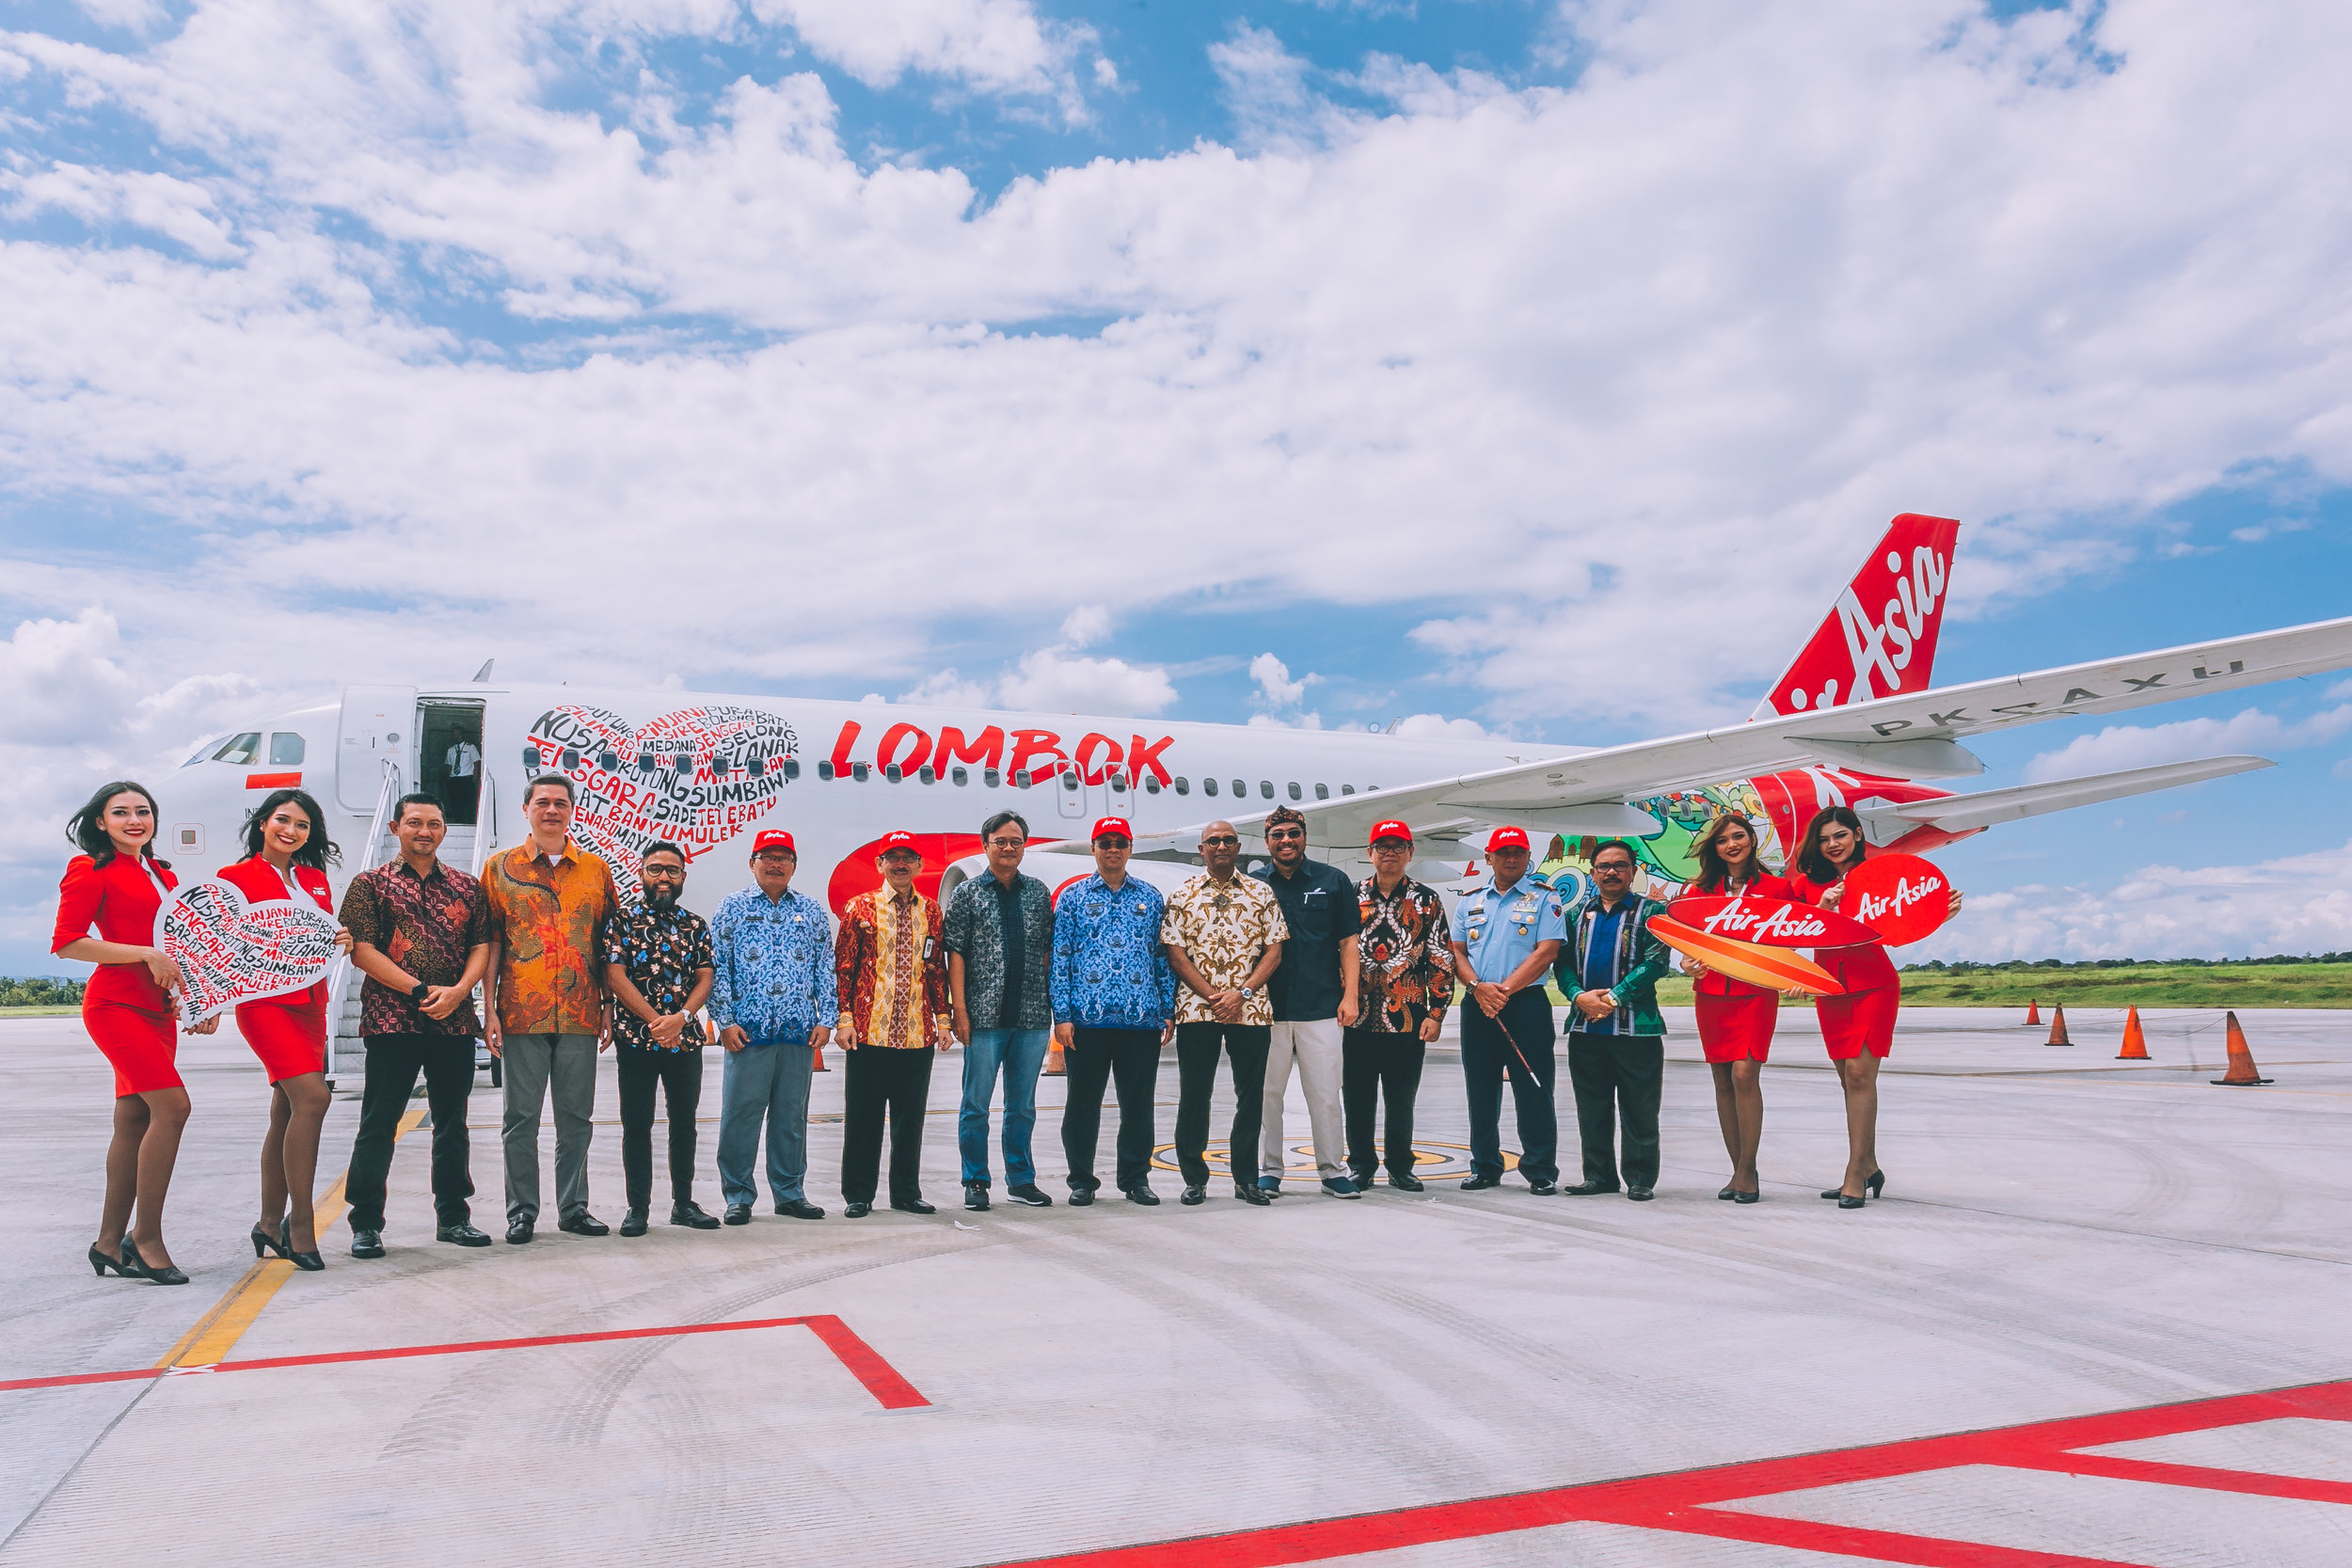 """Photo Caption:  West Nusa Tenggara Governor Dr H Zulkifliemansyah SE Msc (ninth from left), flanked by AirAsia Deputy Group CEO (Airlines) Bo Lingam and Angkasa Pura I Director of International Connectivity and Business Development Sardjono Jhonny Tjitrokusumo to his left, AirAsia Indonesia CEO Dendy Kurniawan and Special Staff to Indonesia's Minister of Tourism Judi Rifajantoro to his right, and AirAsia Thailand Executive Chairman Tassapon Bijleveld (fourth from left) and AirAsia Malaysia CEO Riad Asmat (fifth from left) in front of an AirAsia A320 aircraft with """"I Love Lombok"""" livery."""